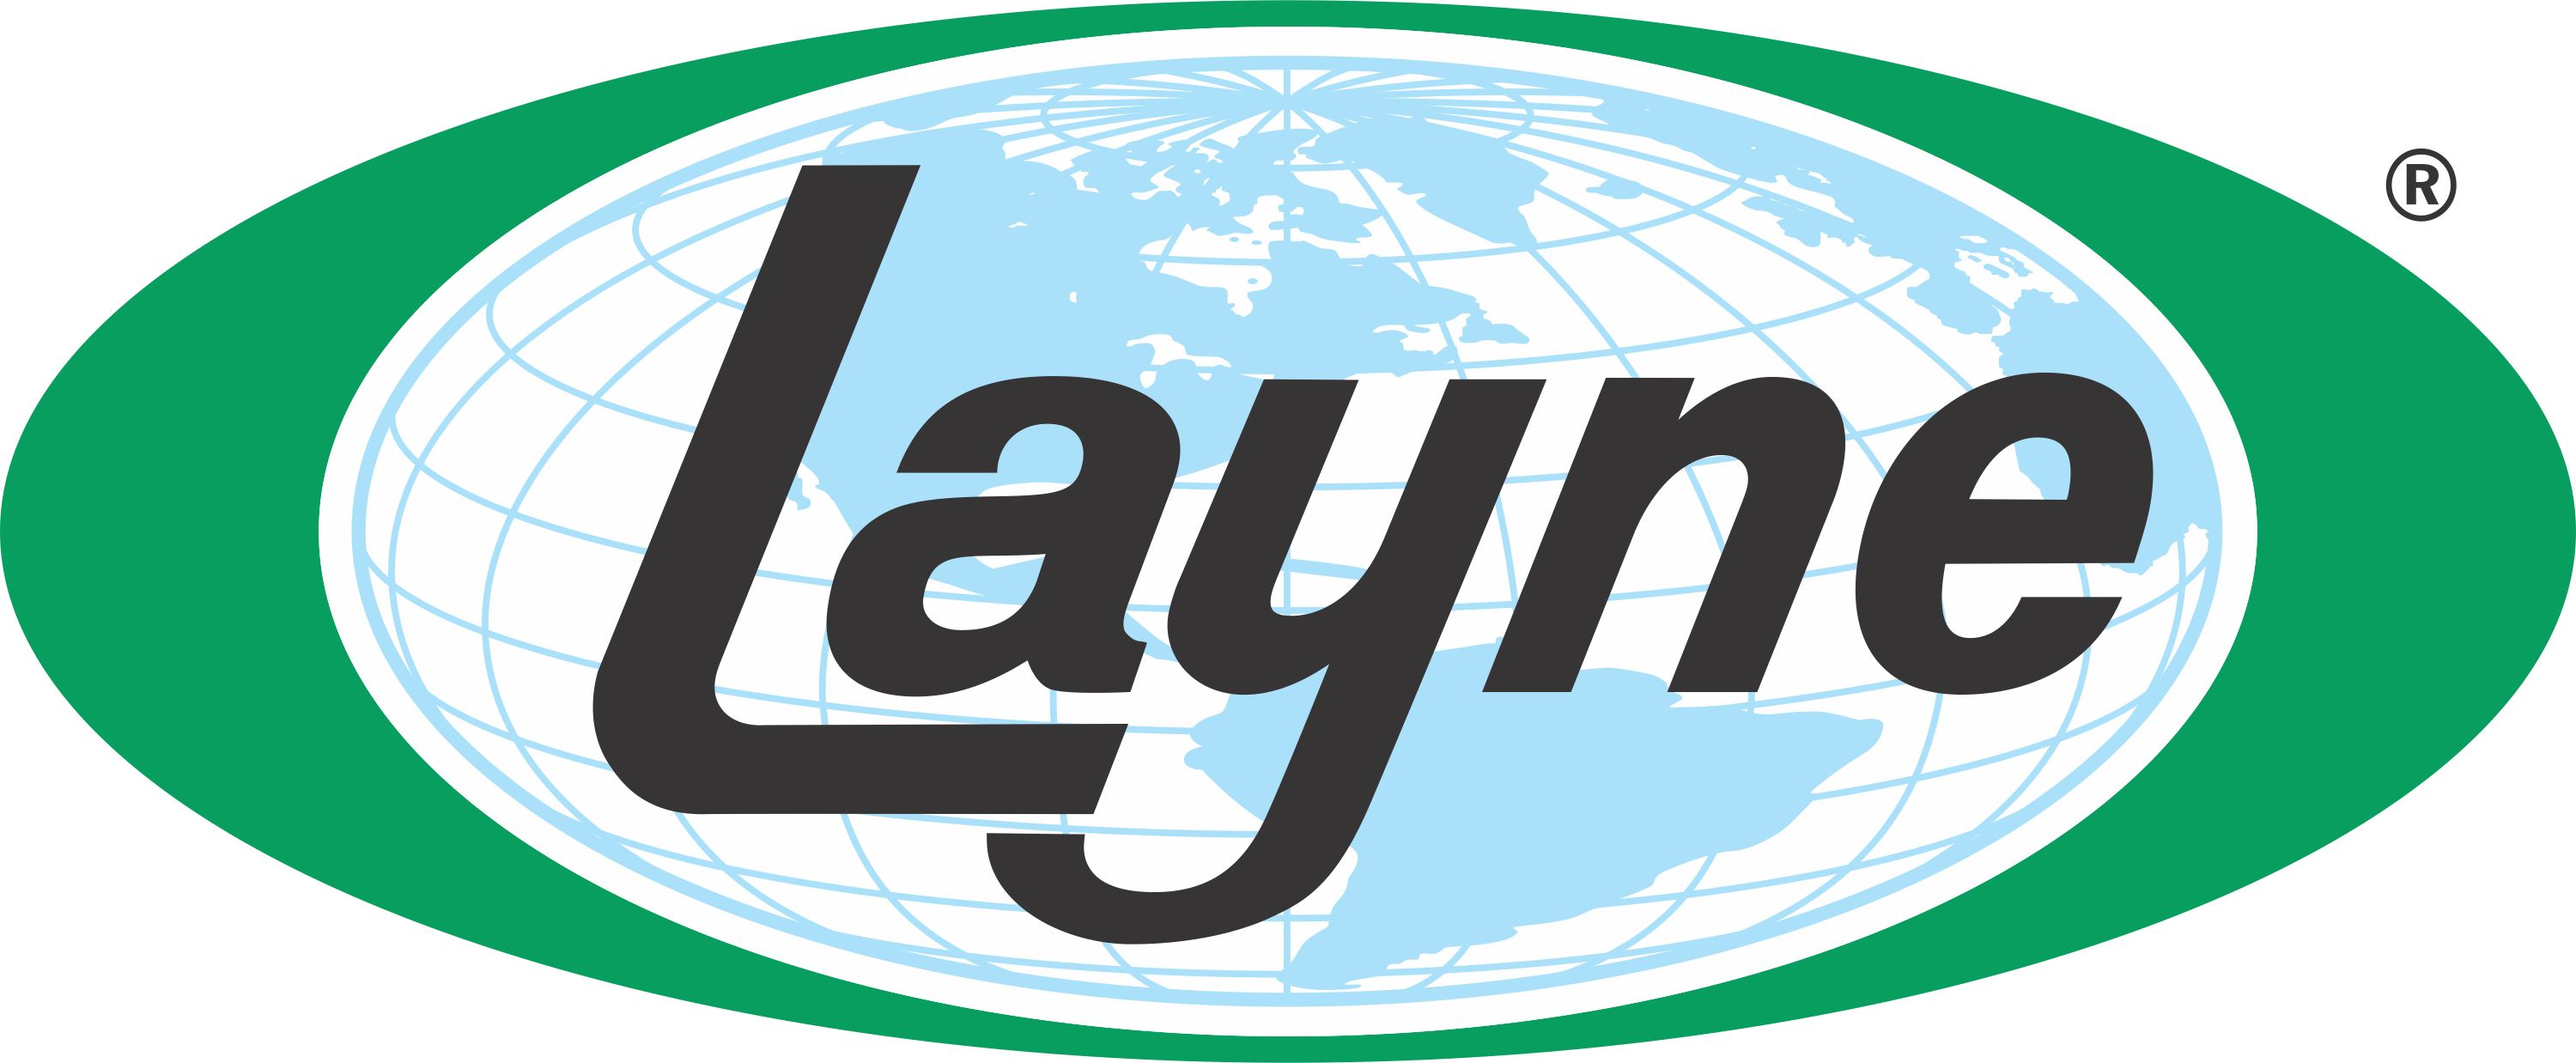 layne-christensen-co-layn-upgraded-by-thestreet-to-hold.jpg